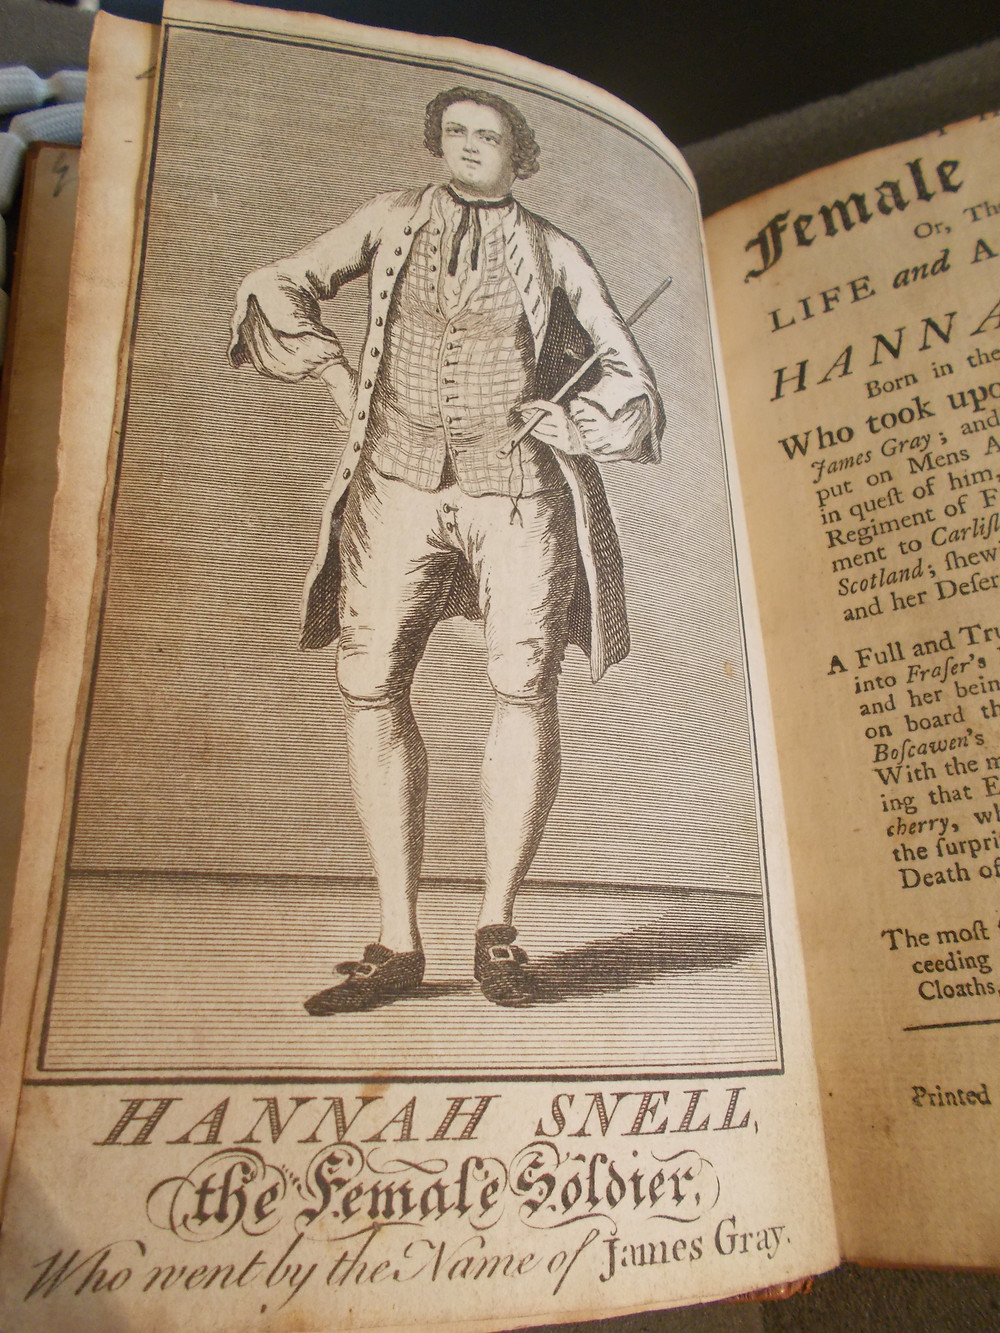 Female Soldier Or, The Surprising Life and Adventures of Hannah Snell